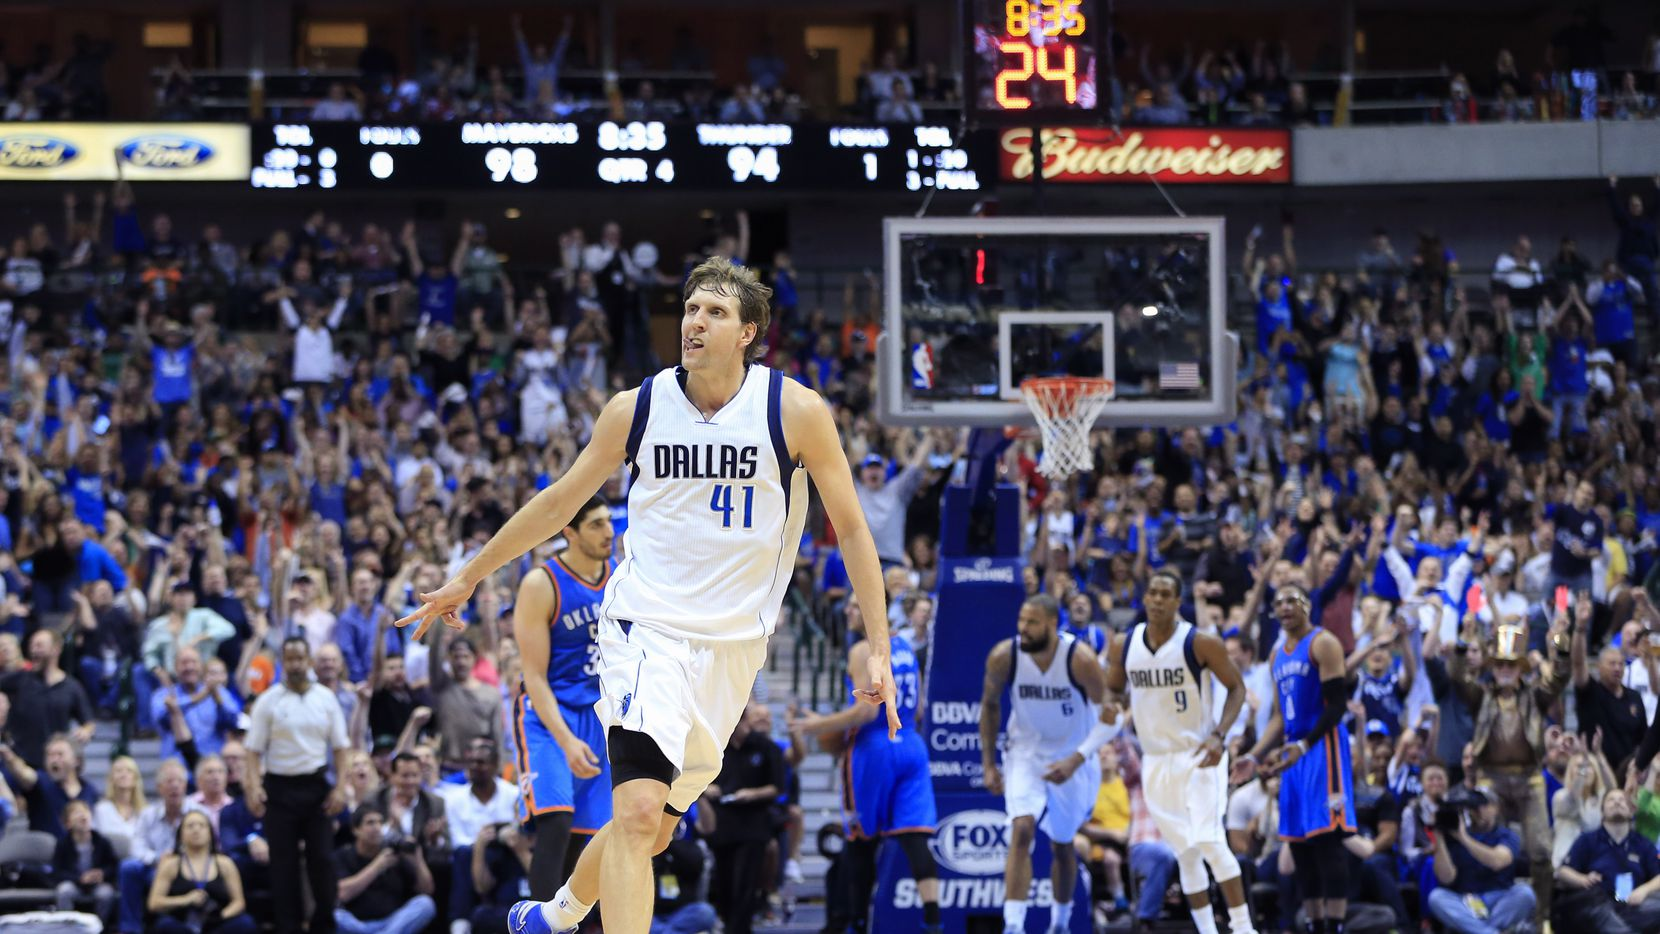 online store 5a4b1 37484 Here's what Mavericks' star Dirk Nowitzki does with all his ...